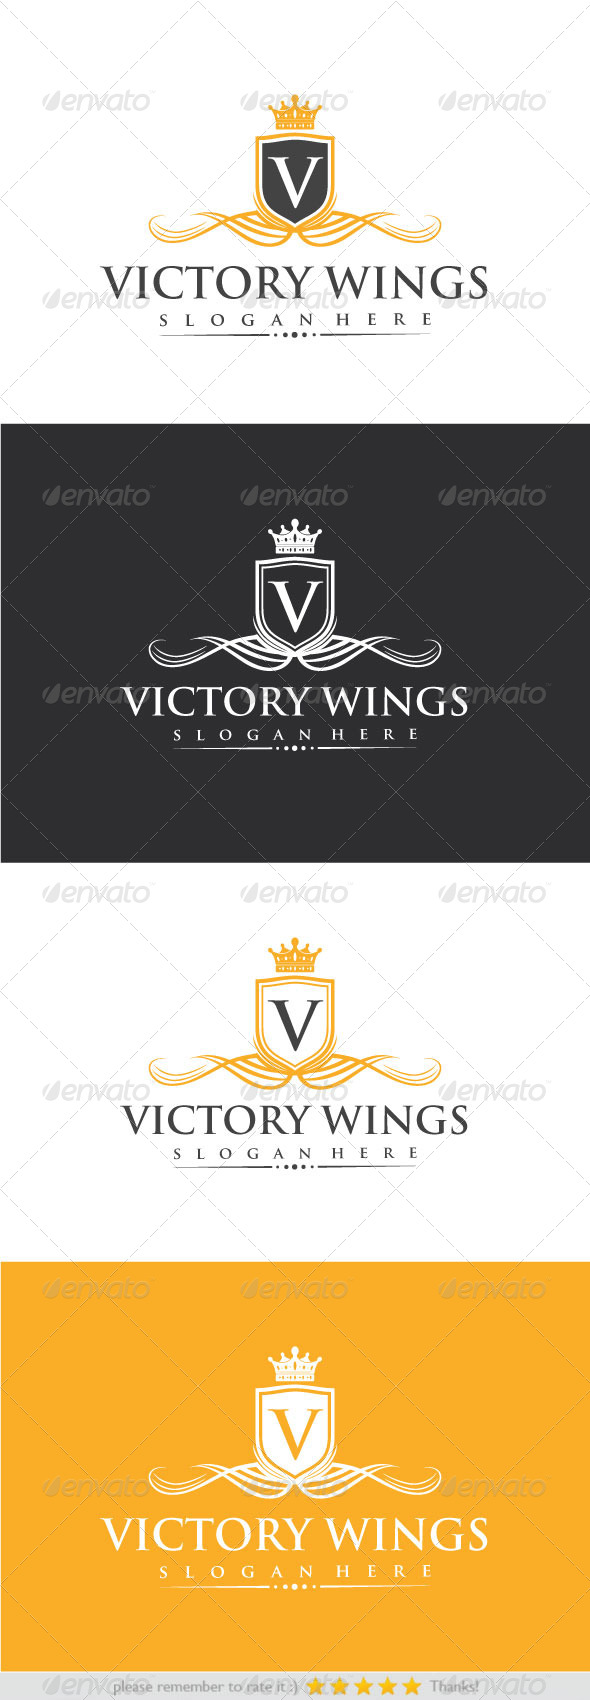 GraphicRiver Victory Wings 8564113